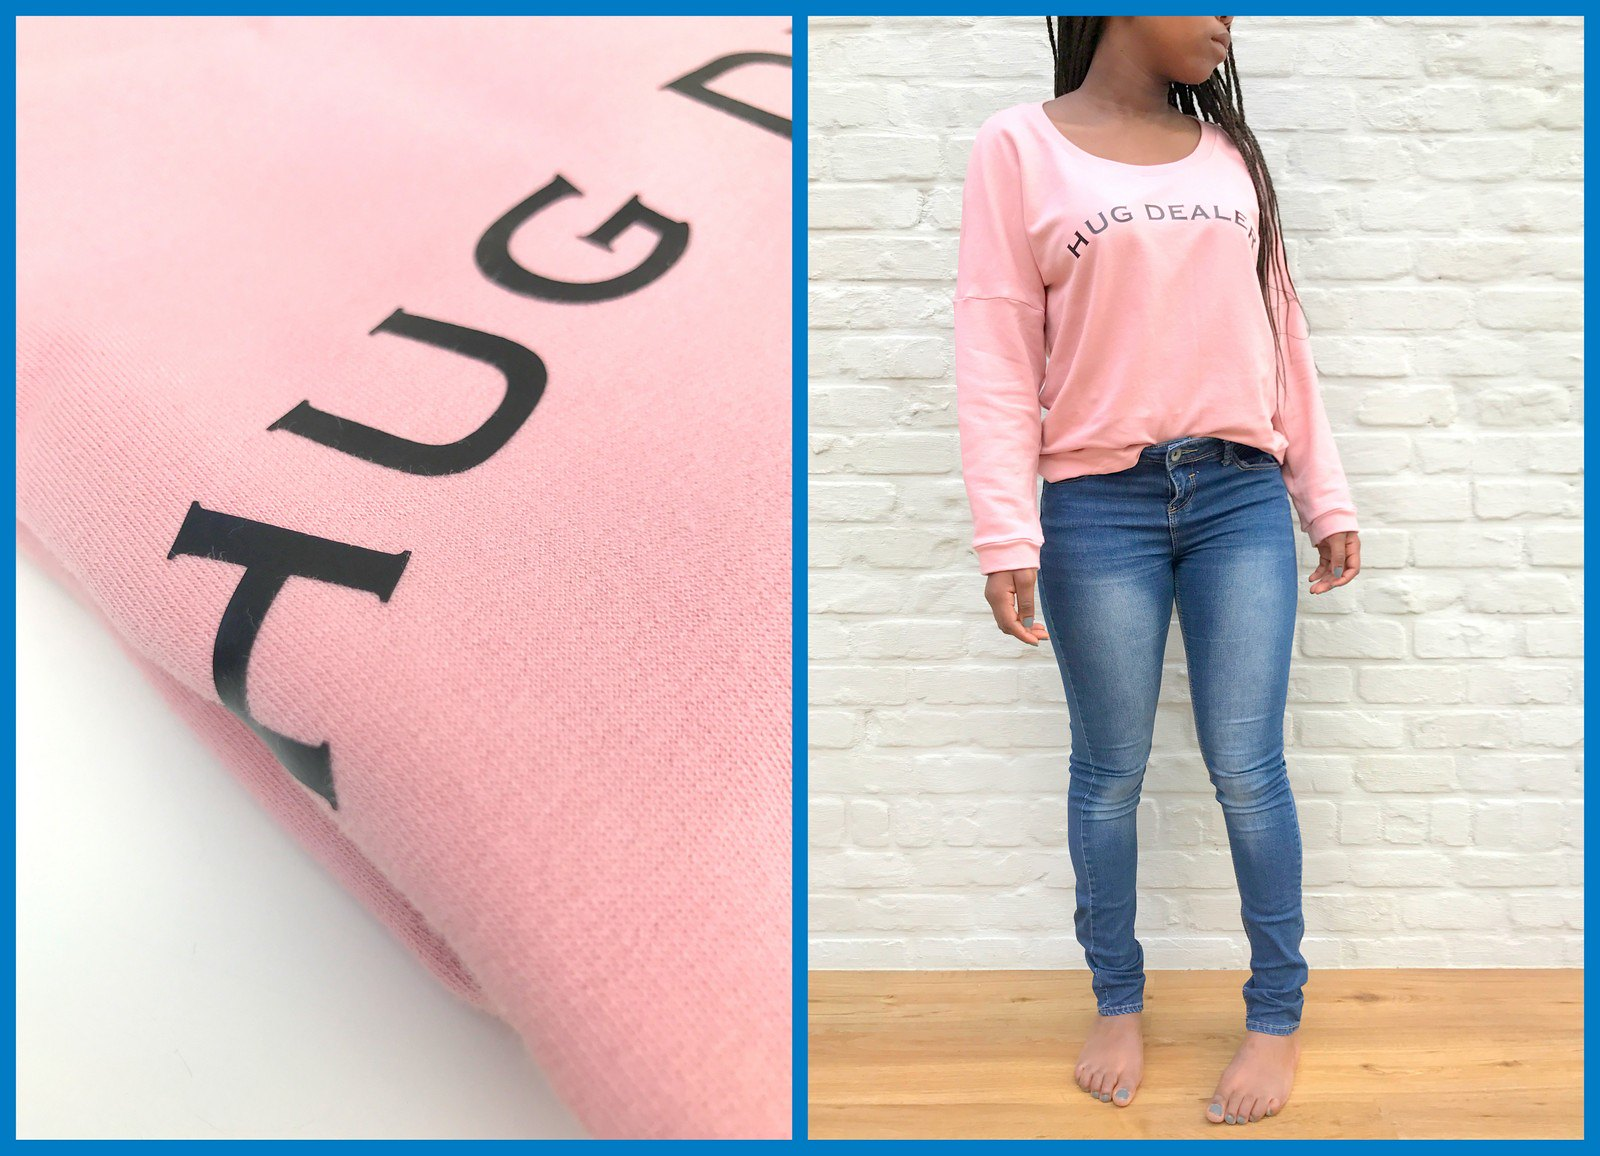 hug dealer sweater (collage1)